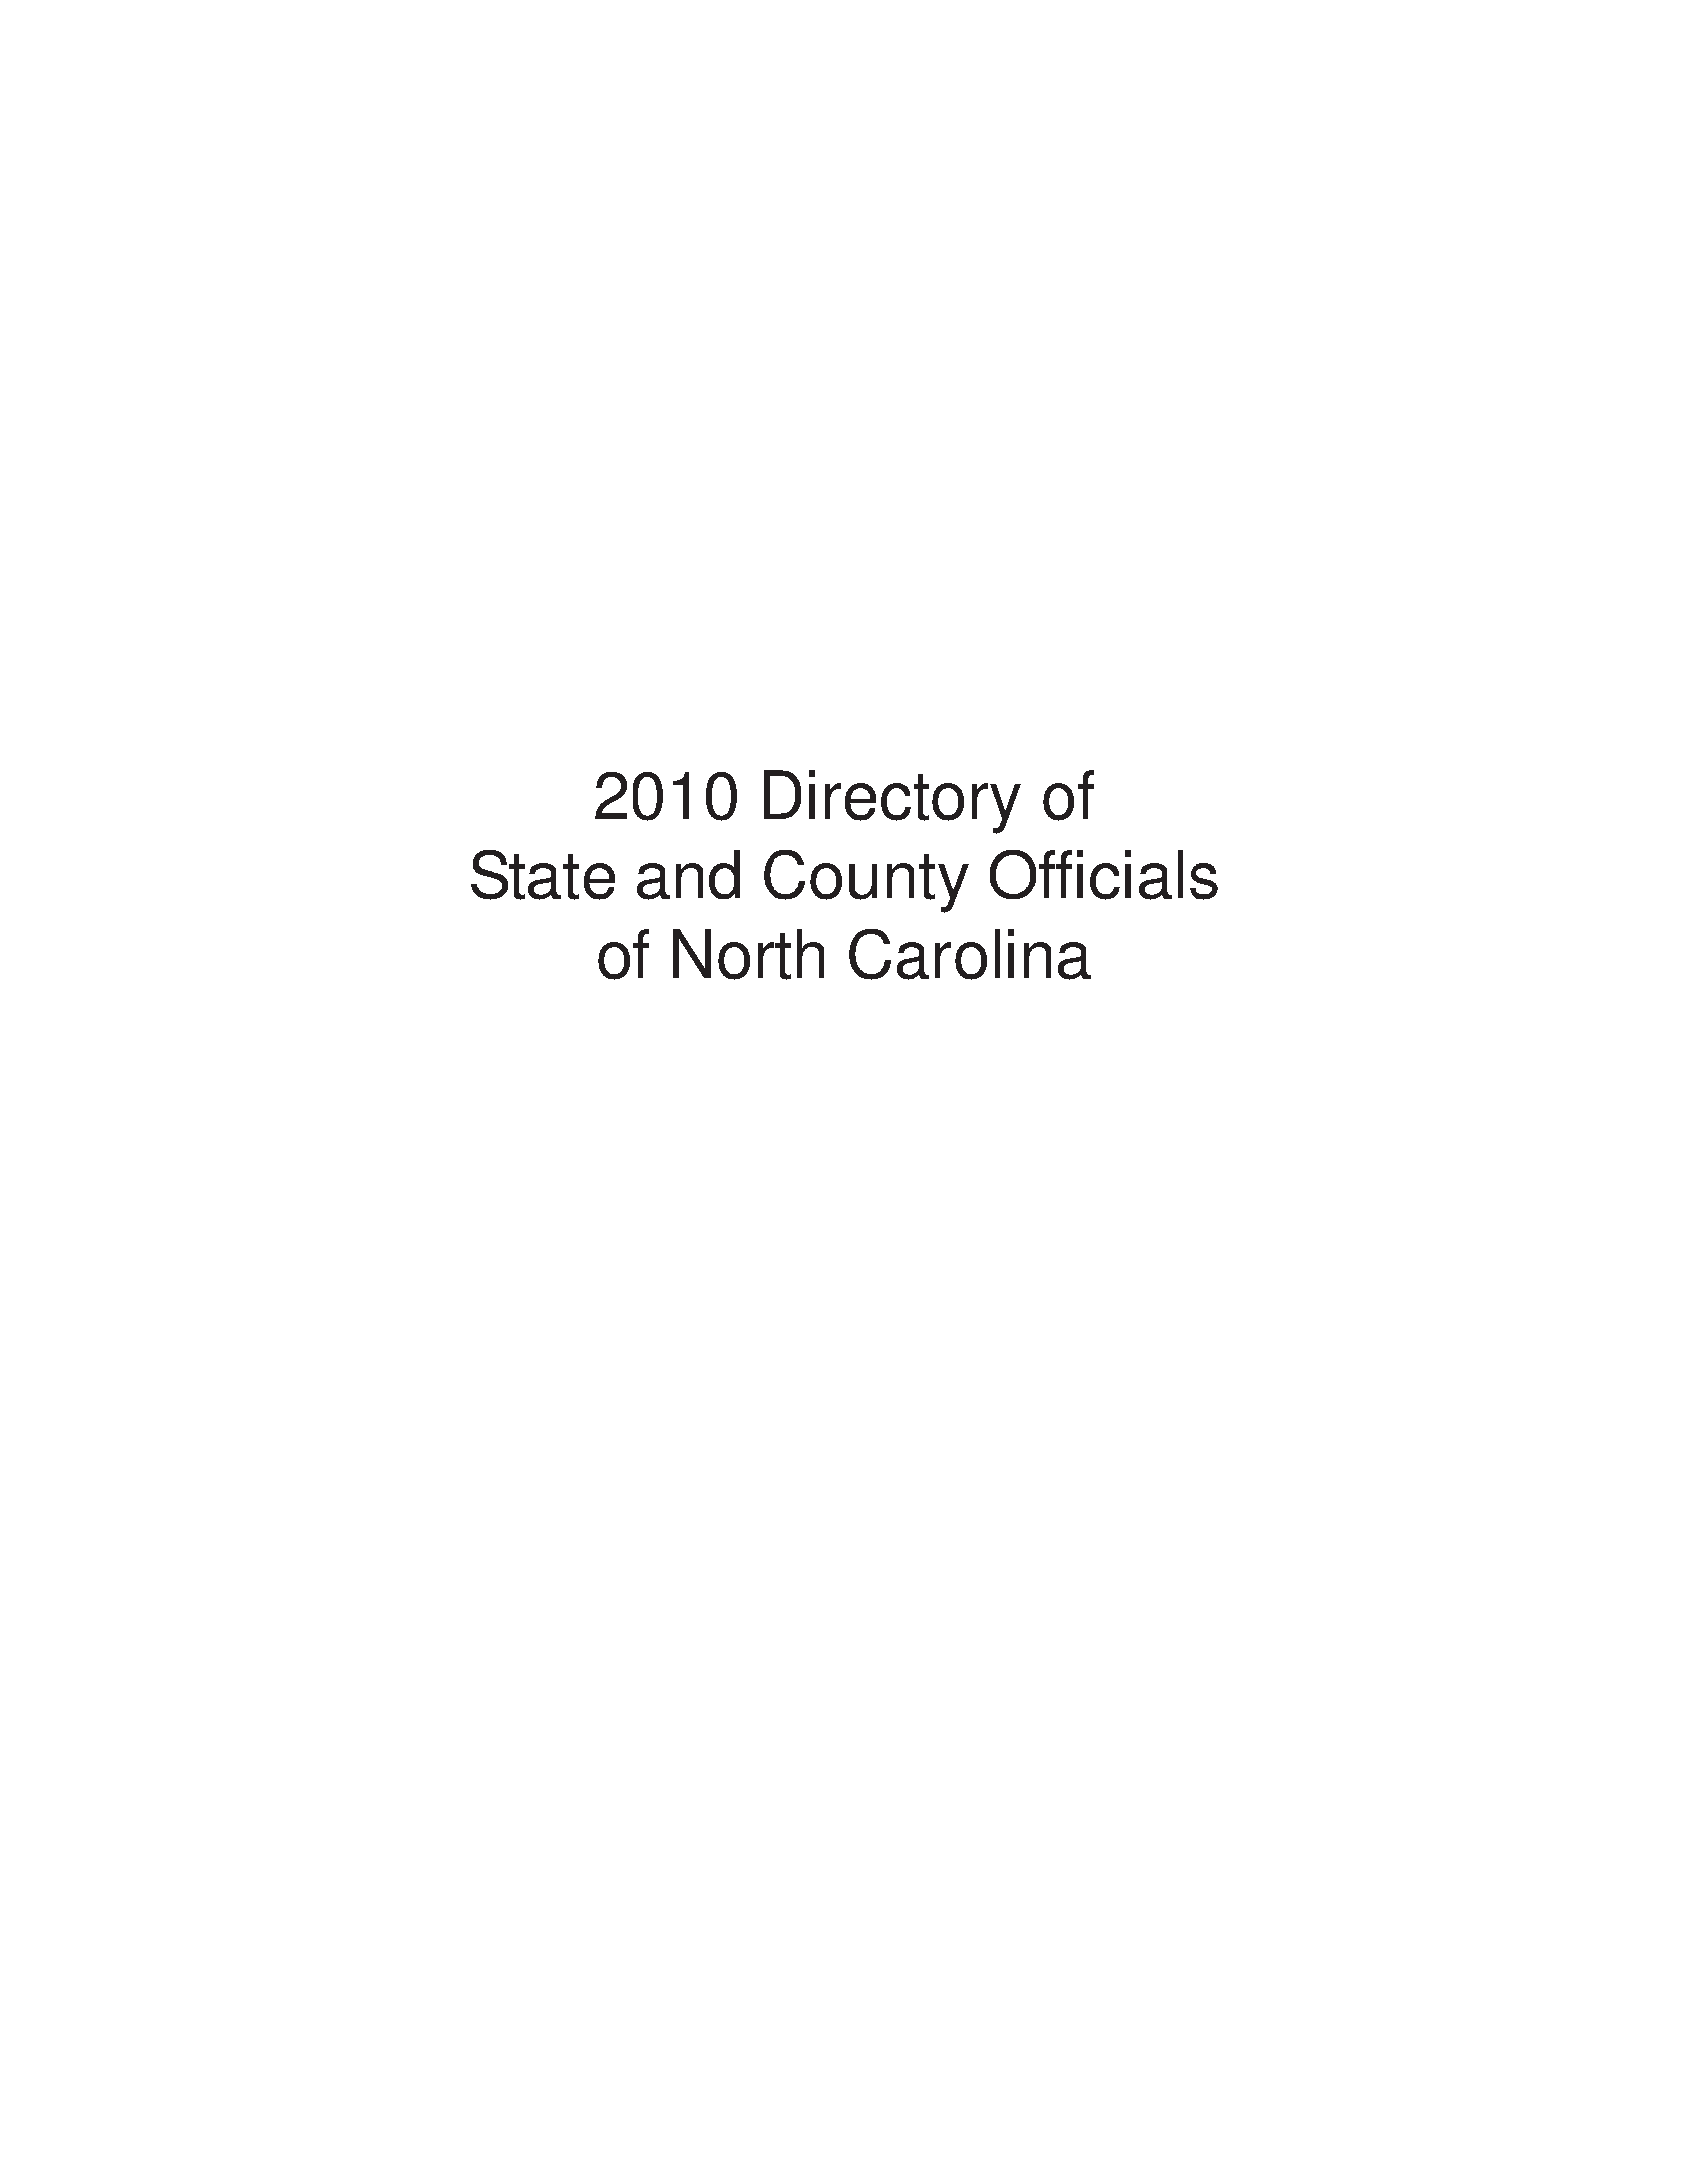 Directory Of The State And County Officials Of North Carolina